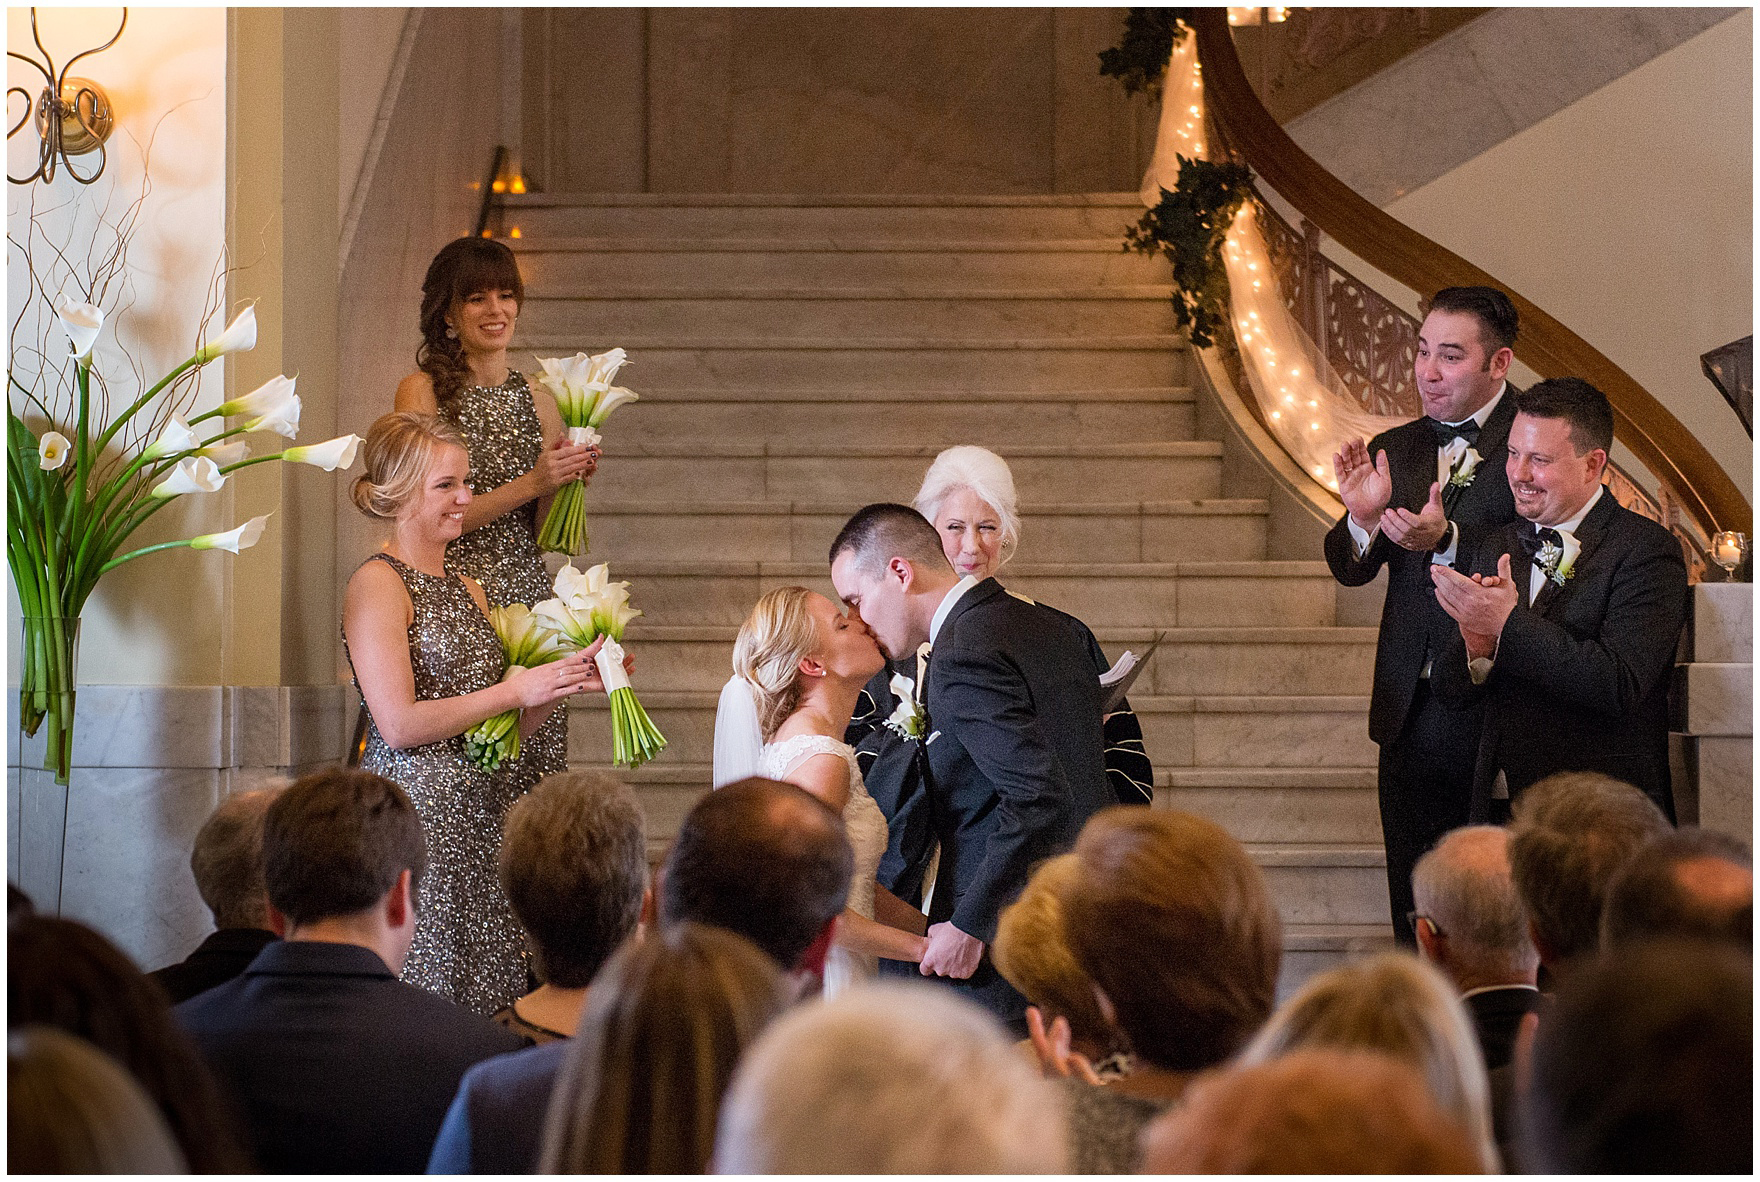 The bride and groom kiss during a Newberry Library Chicago wedding.